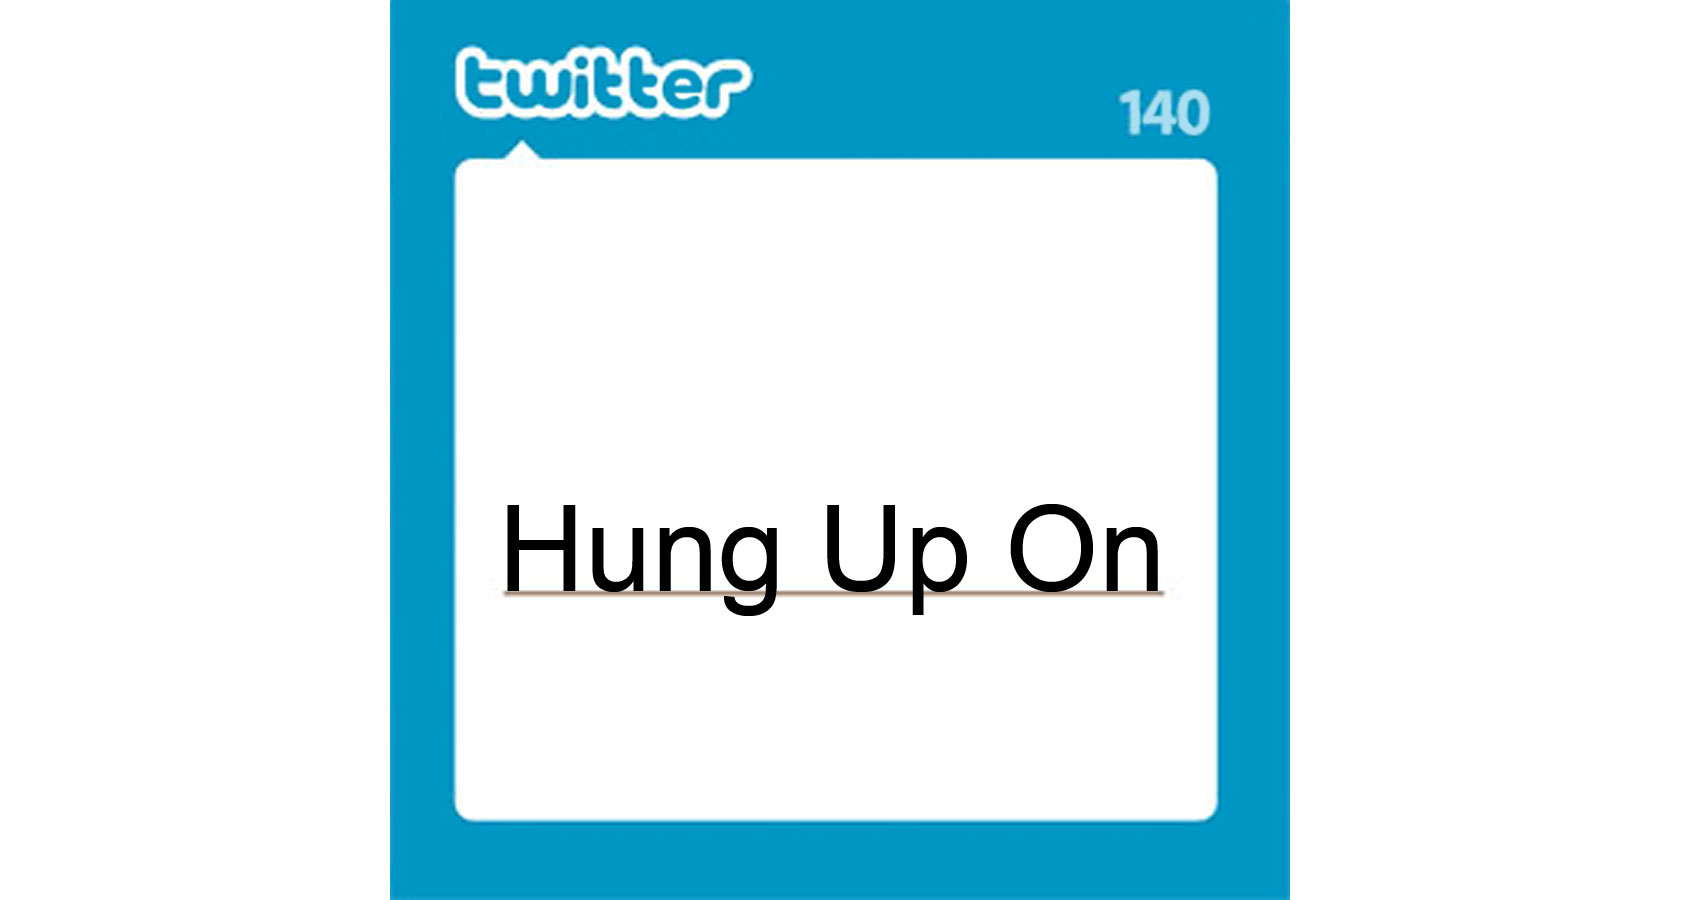 Hung Up On by Leanne Howard Kenney at Spillwords.com